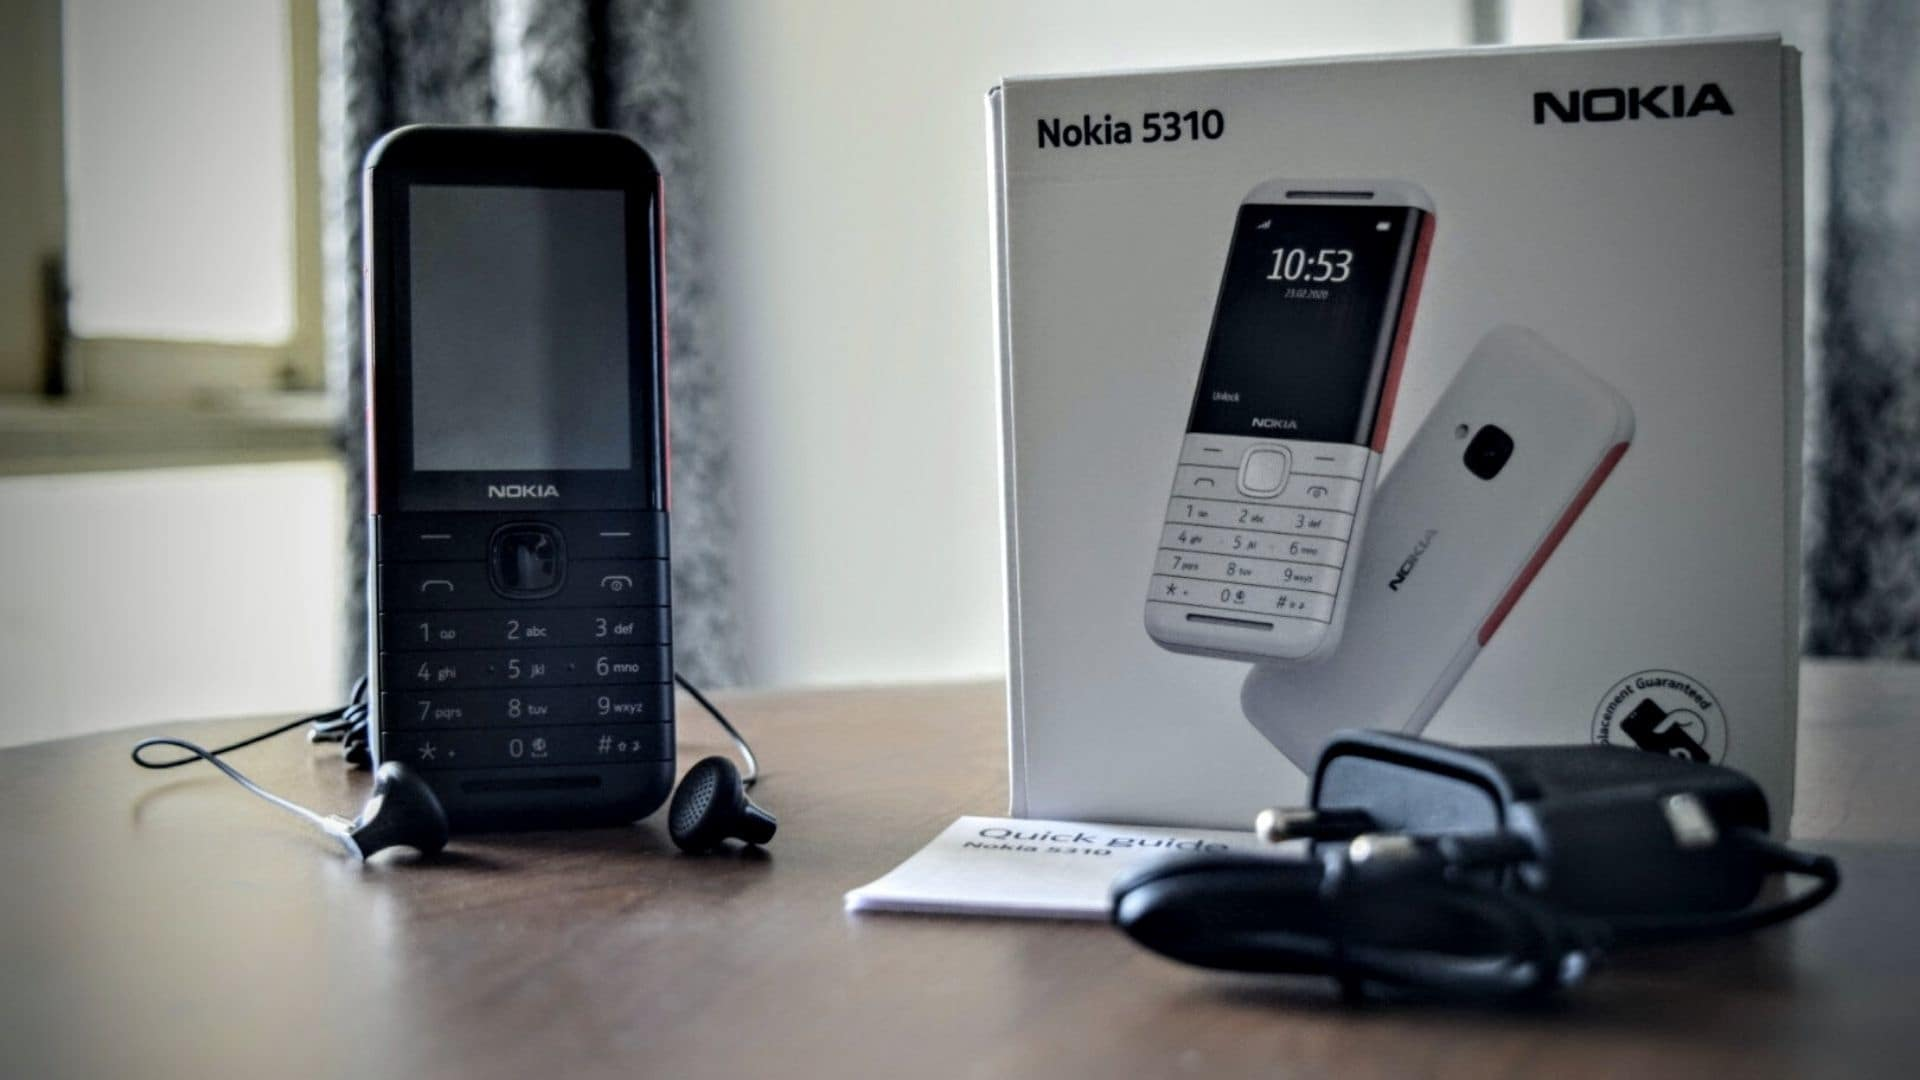 Nokia 5310 is priced at <span class='webrupee'>₹</span>3,399 and it comes in two colour combinations of black/red and white/red.